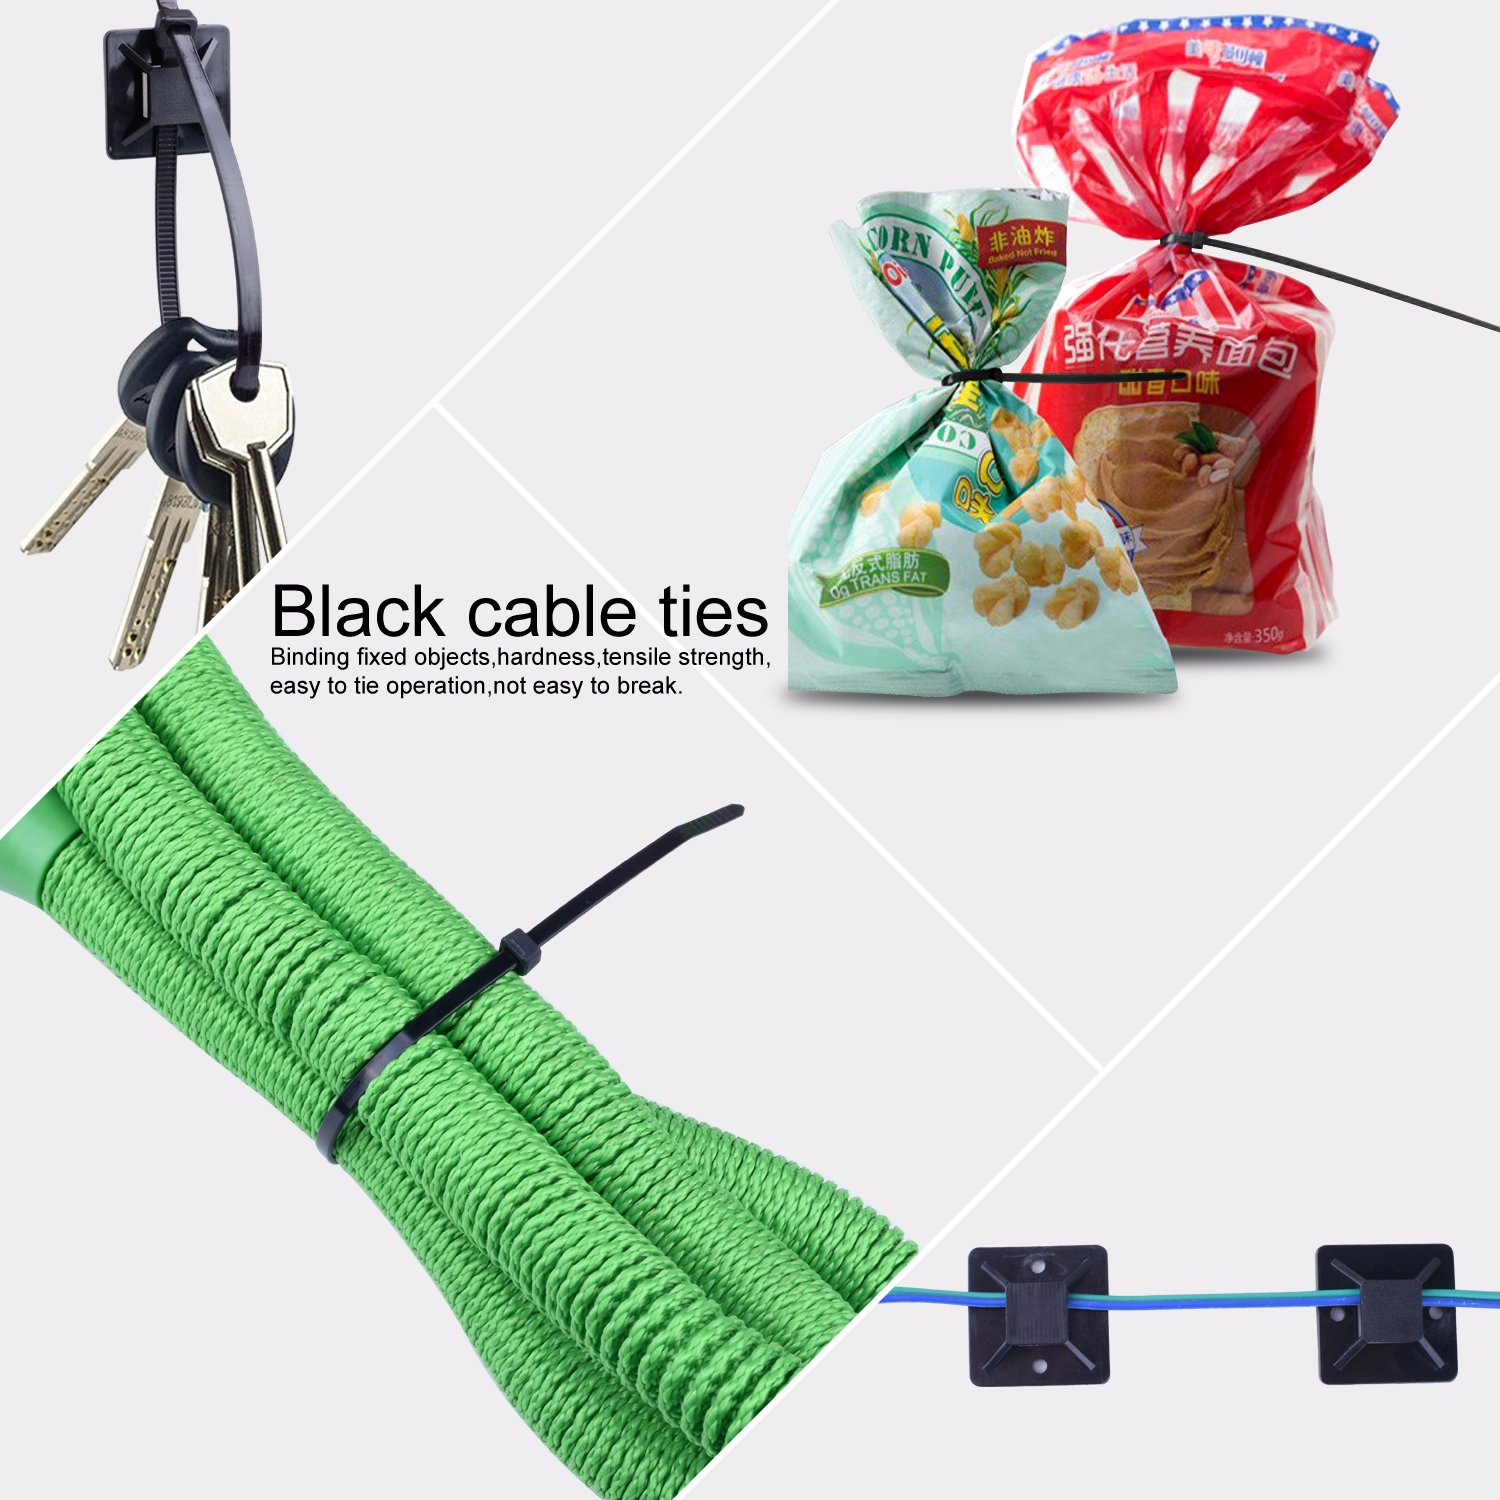 NOUVCOO 250pcs Self-locking Zip Ties Black 10 inches & 100pcs Self-adhesive Cable Tie Mounts Black 0.9x0.9 inch with Screw Holes for Home Office Garden Garage and Workshop NV03 by NOUVCOO (Image #6)